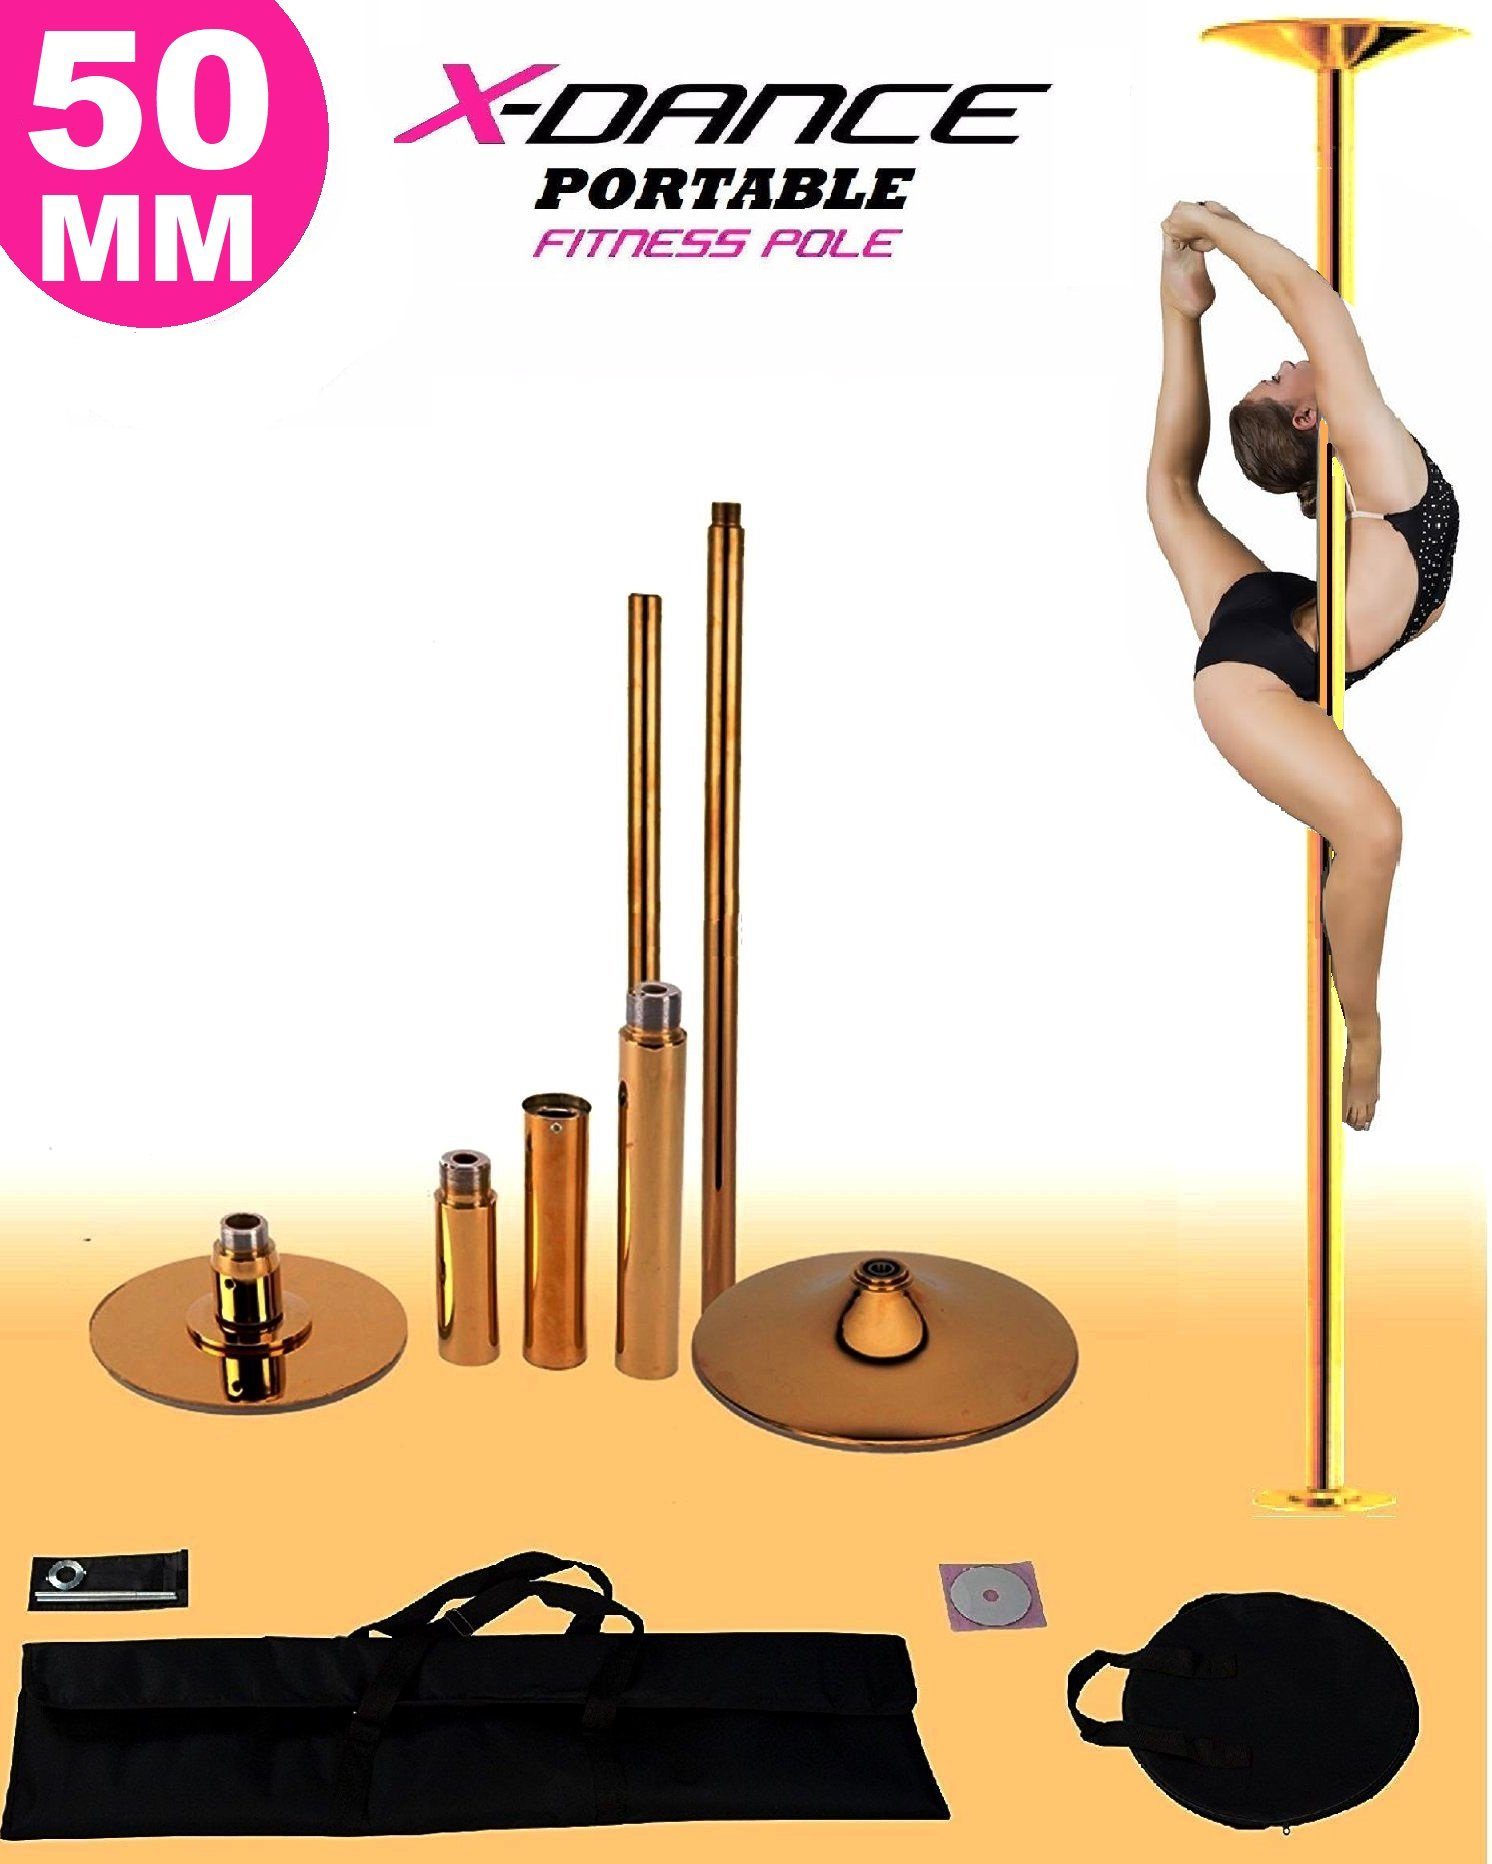 X-Dance 50mm Gold Chrome 9Ft Dance Pole Portable Fitness Exercise Exotic Strip and Spin + Bag by X-Dance (Image #1)